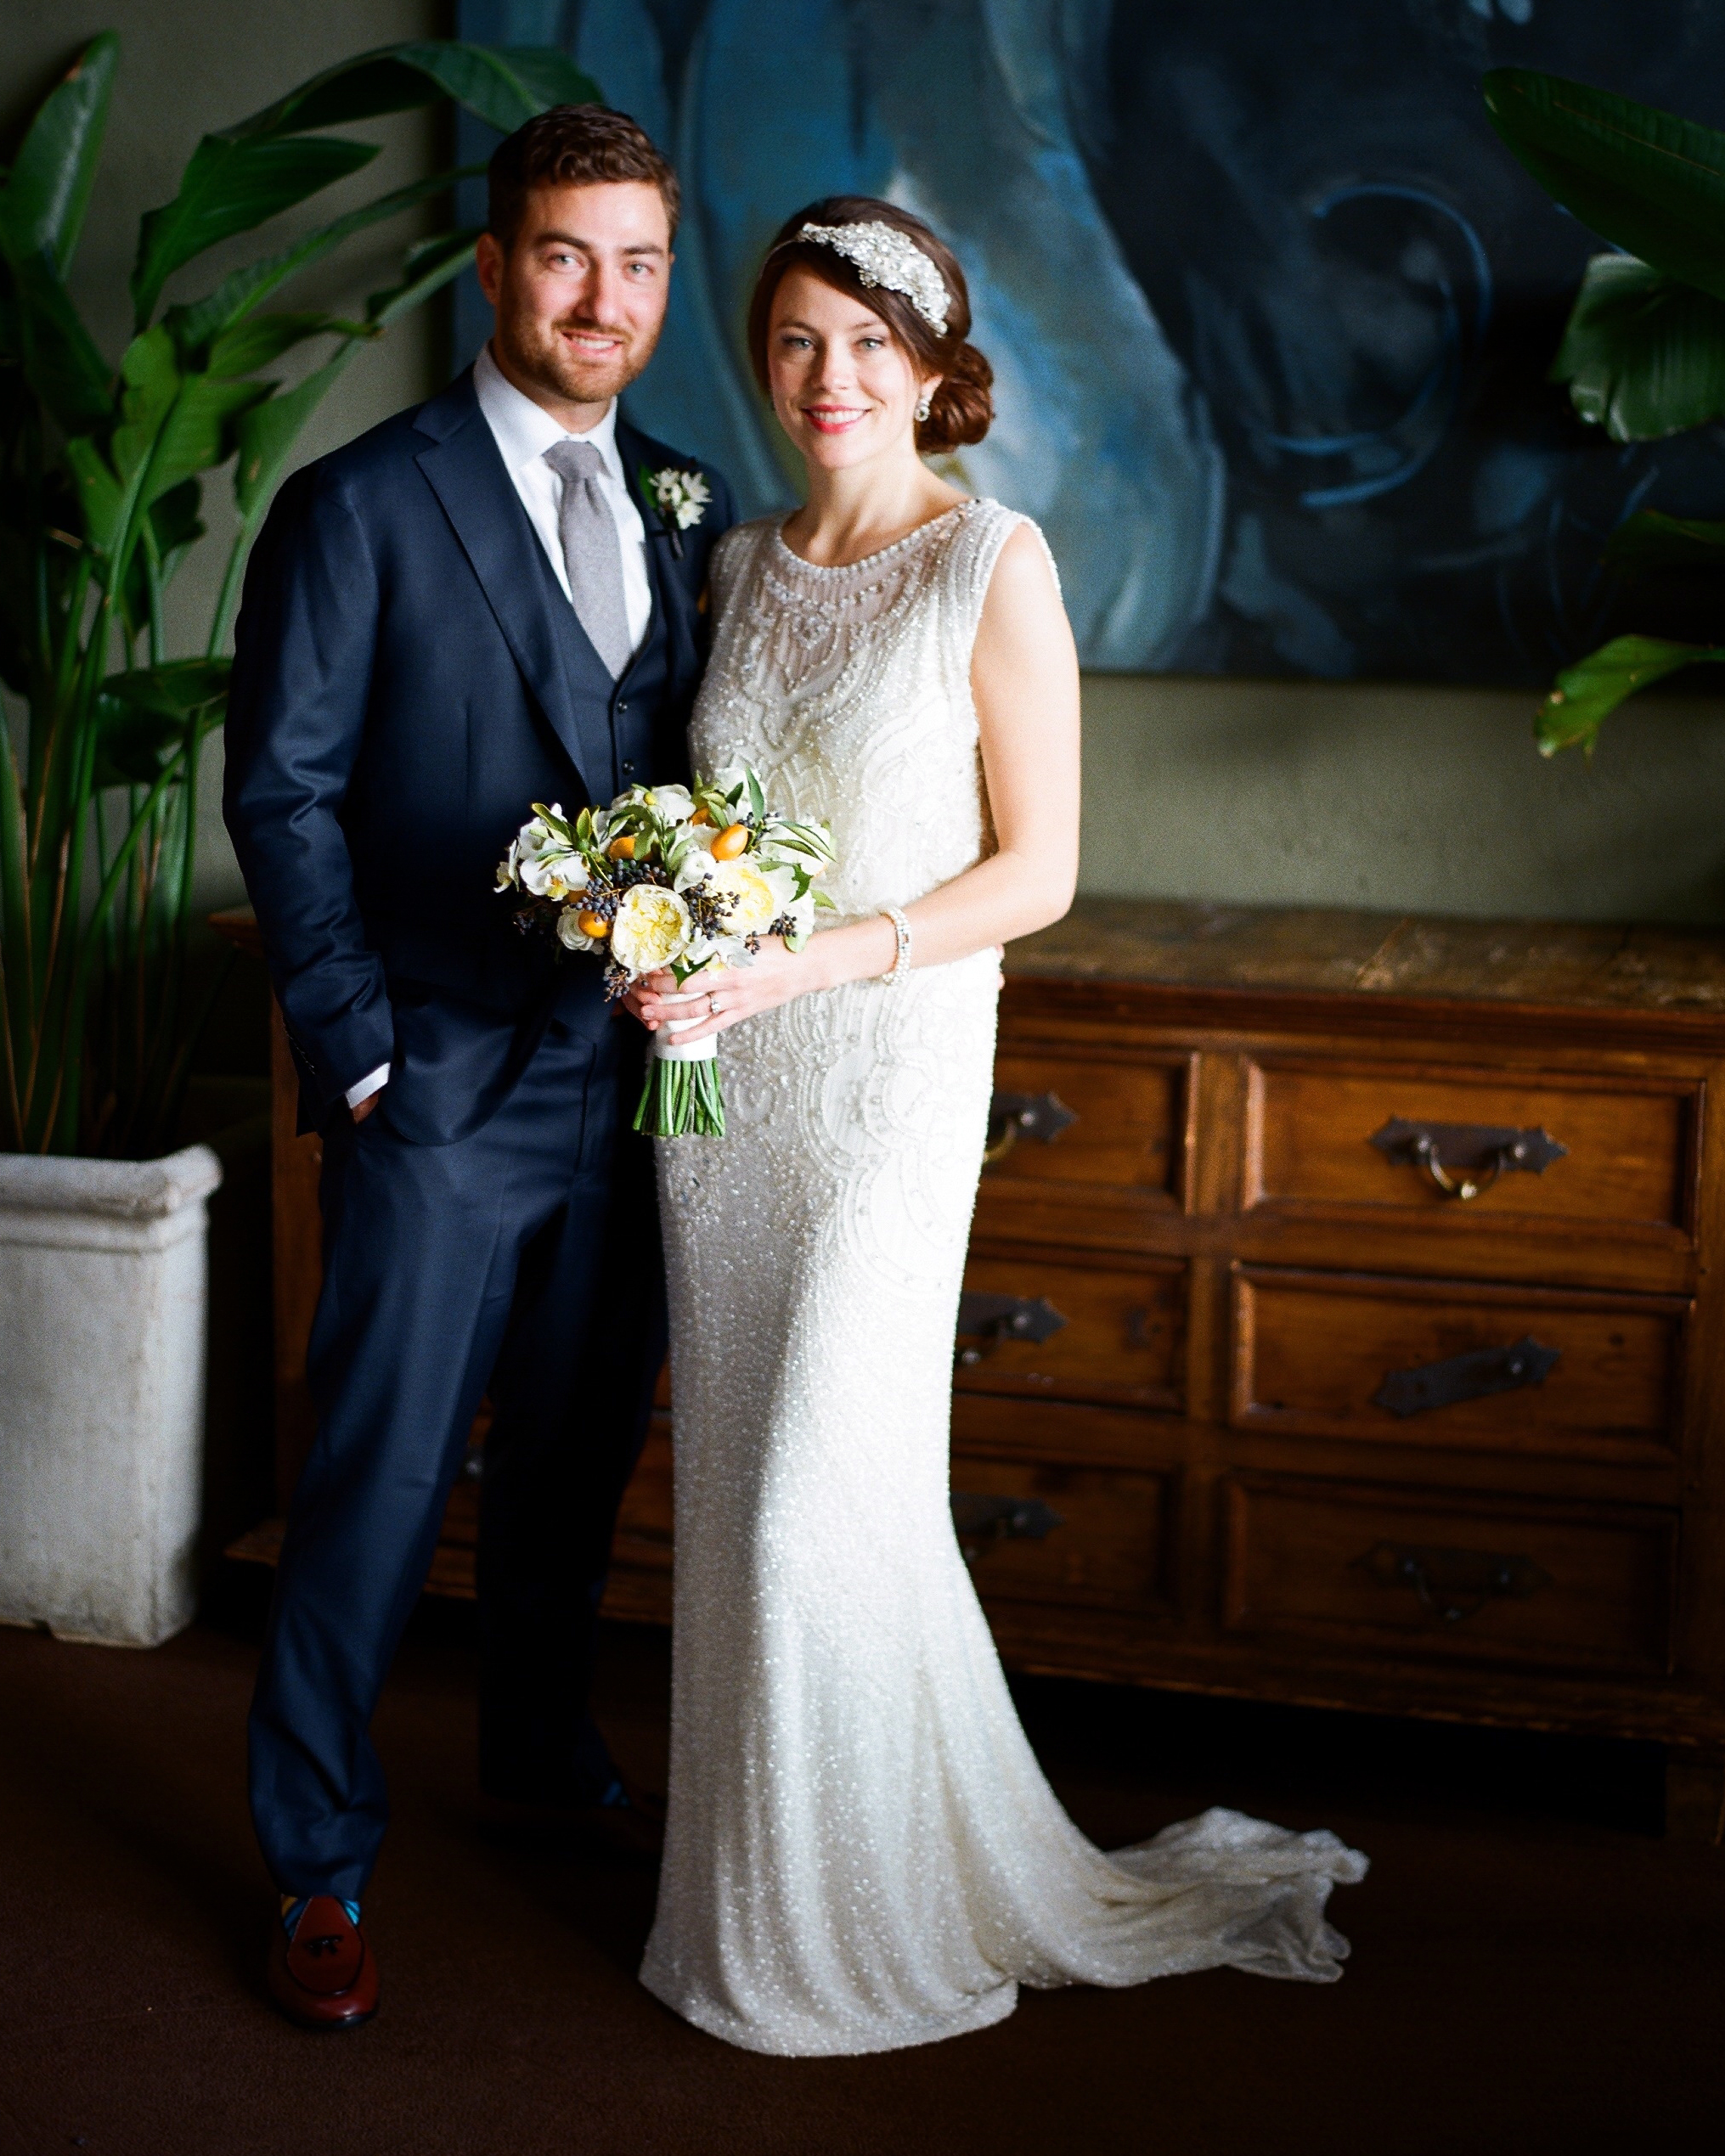 molly-sam-wedding-portrait1-0614.jpg